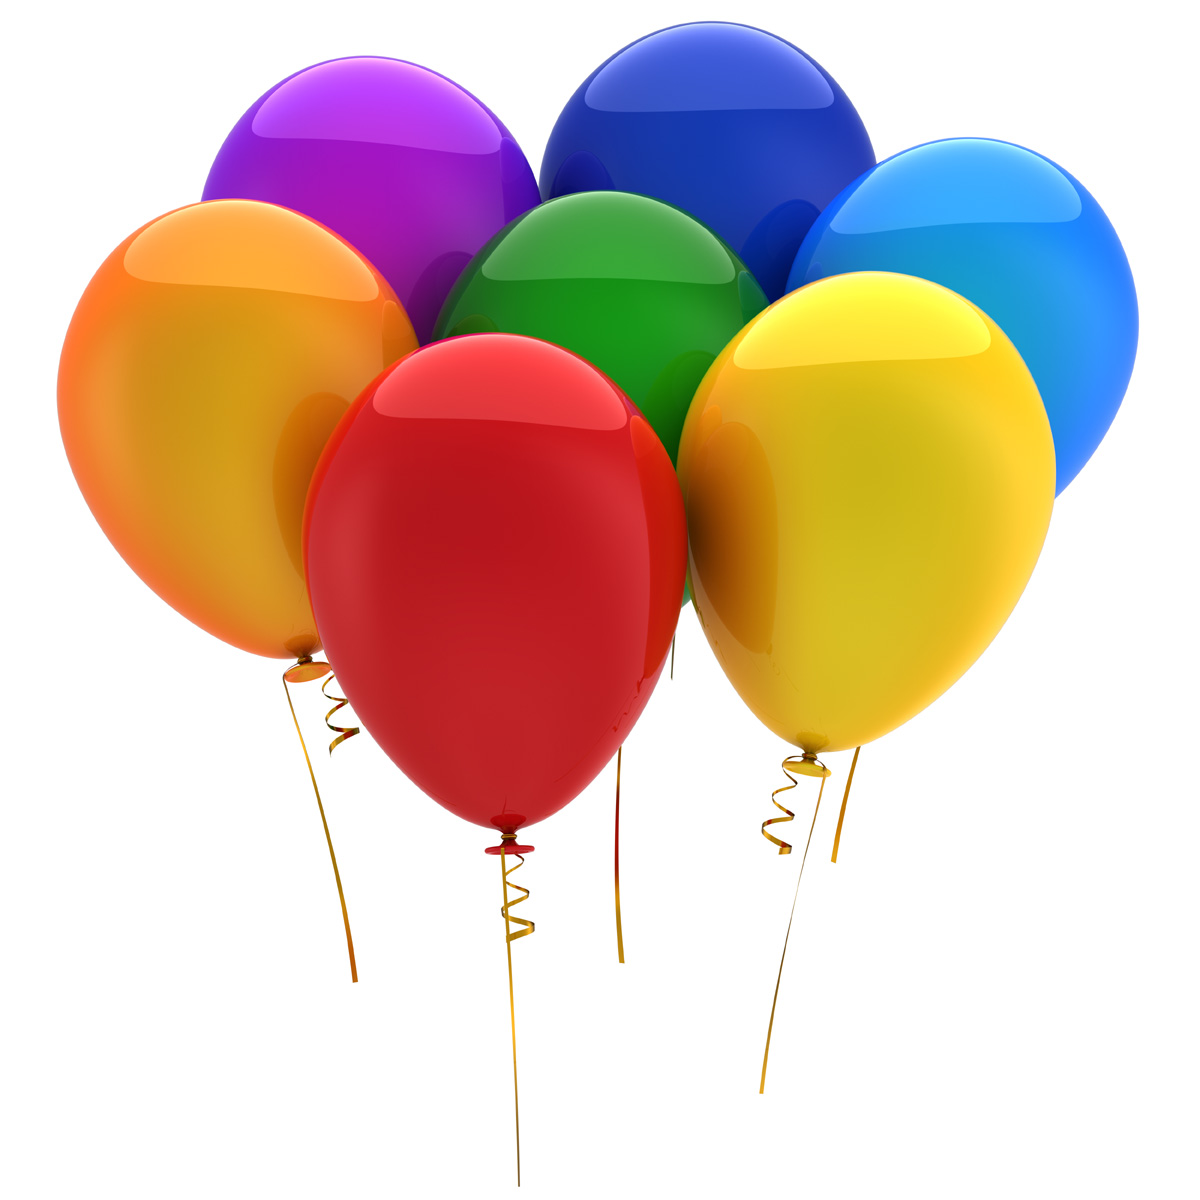 Colorful balloons 16403